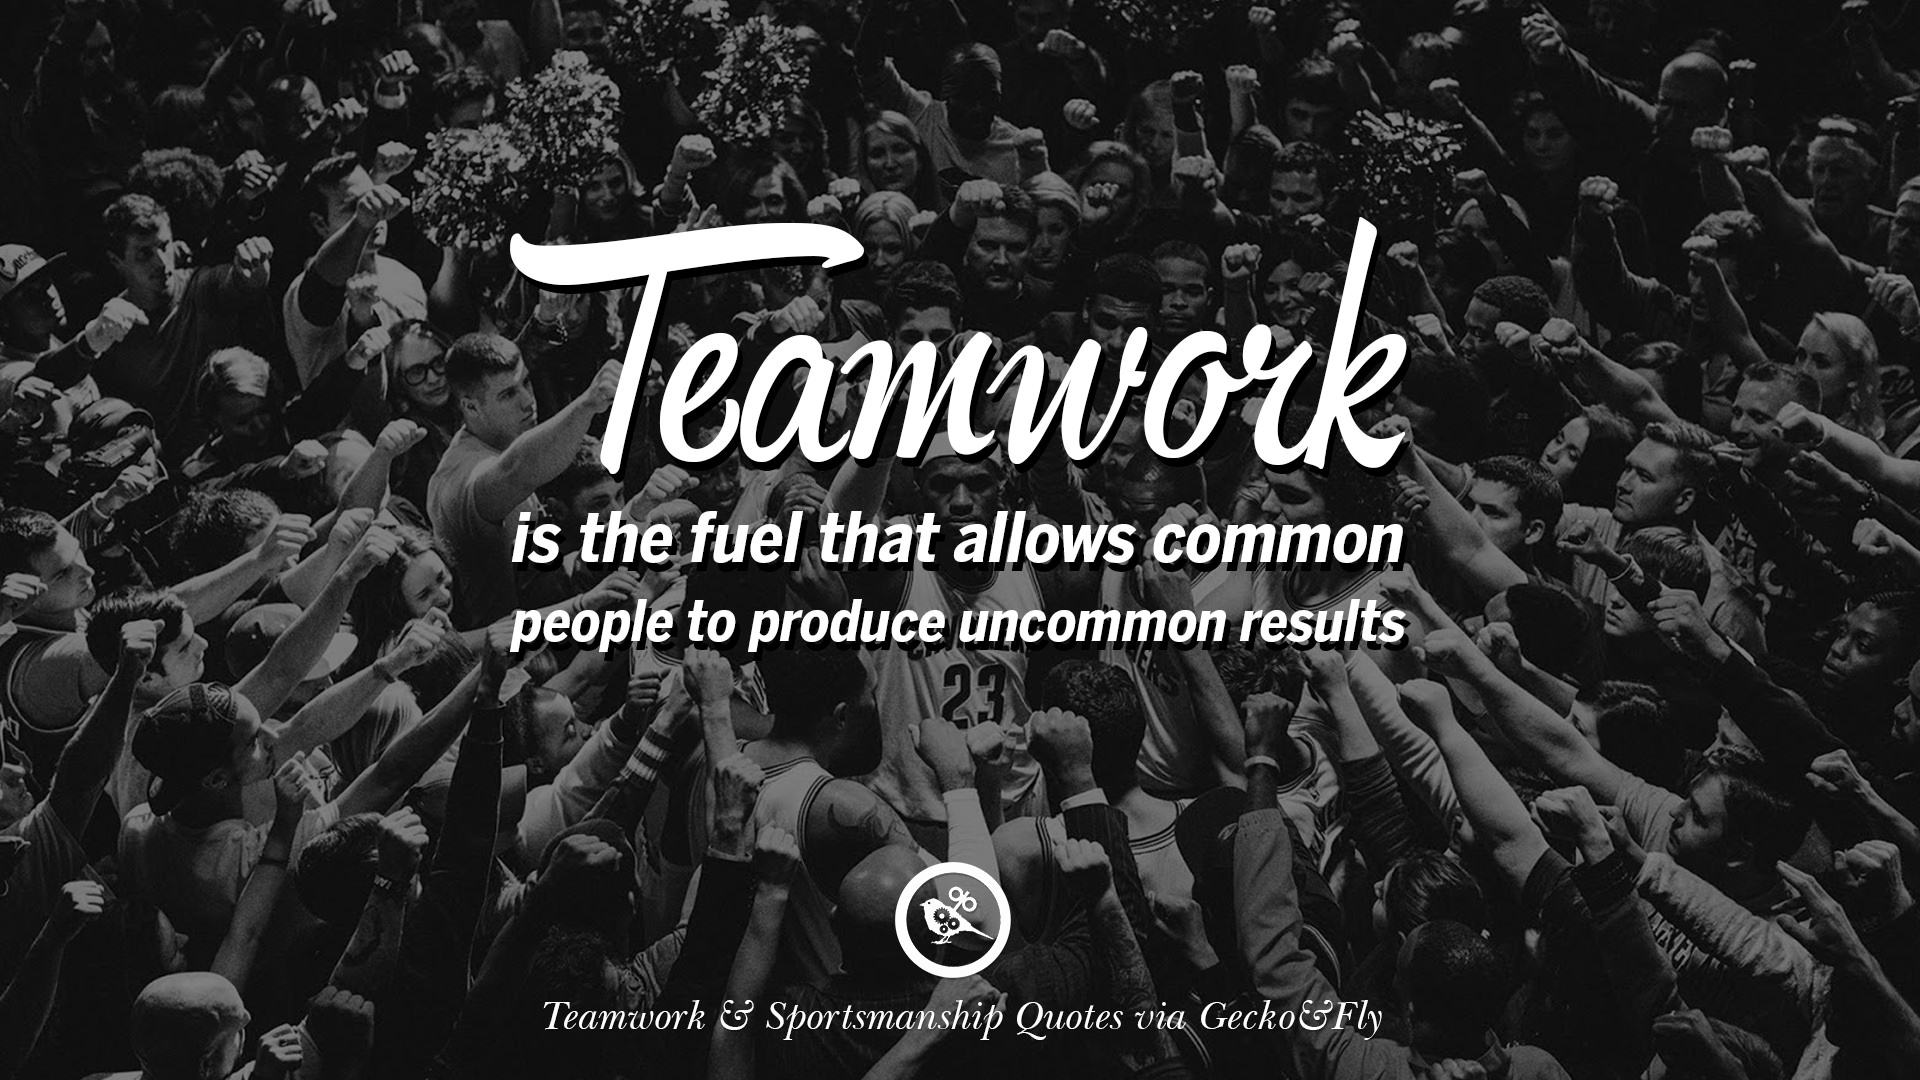 teamwork quotes team sportsmanship sports inspirational football motivational soccer uncommon allows produce fuel common results baseball geckoandfly saying aspire